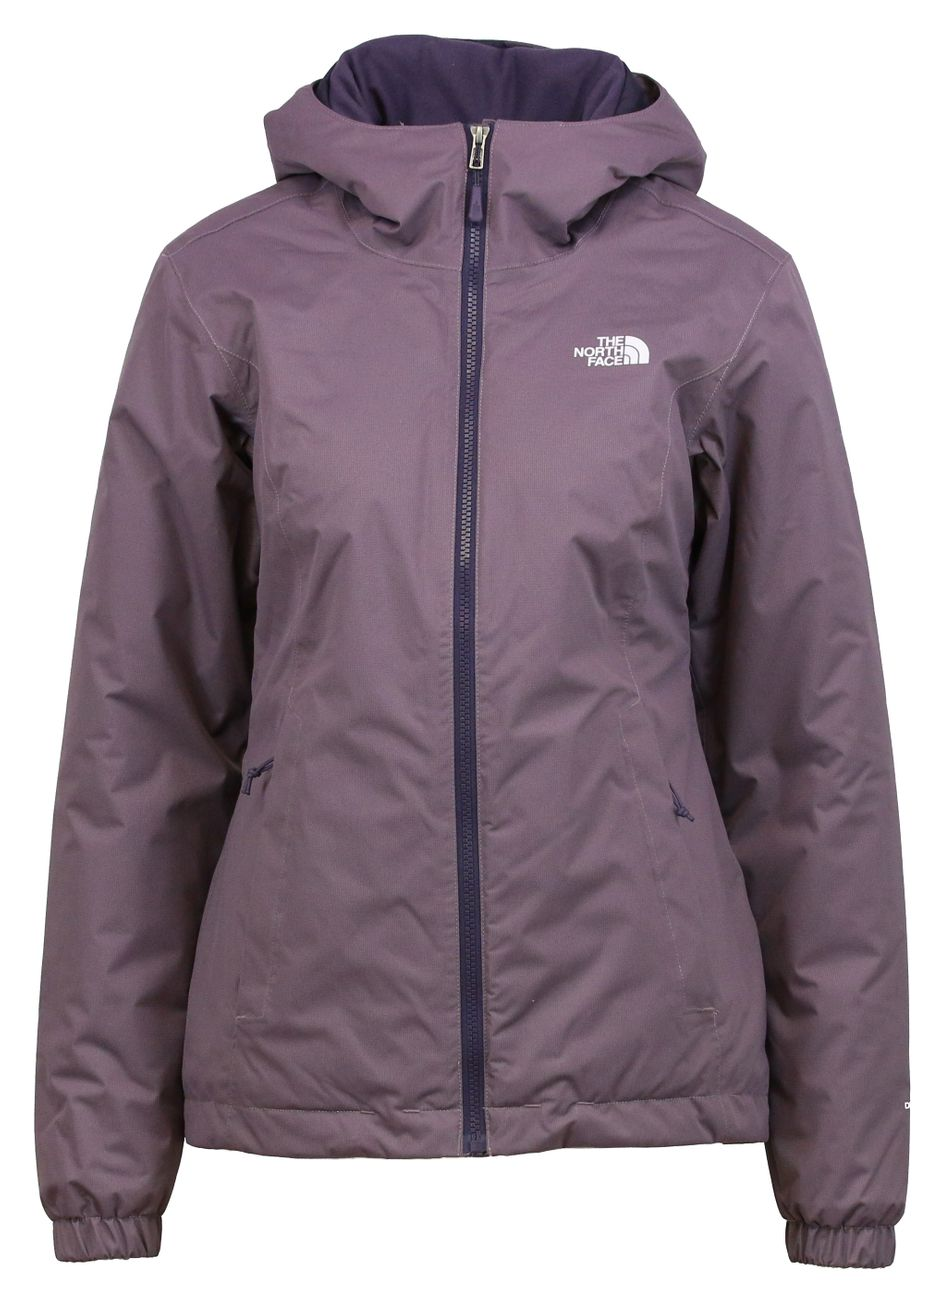 Womens Title Jacket Quest Original North Face The Show About Insulated Details rWoeBCdx